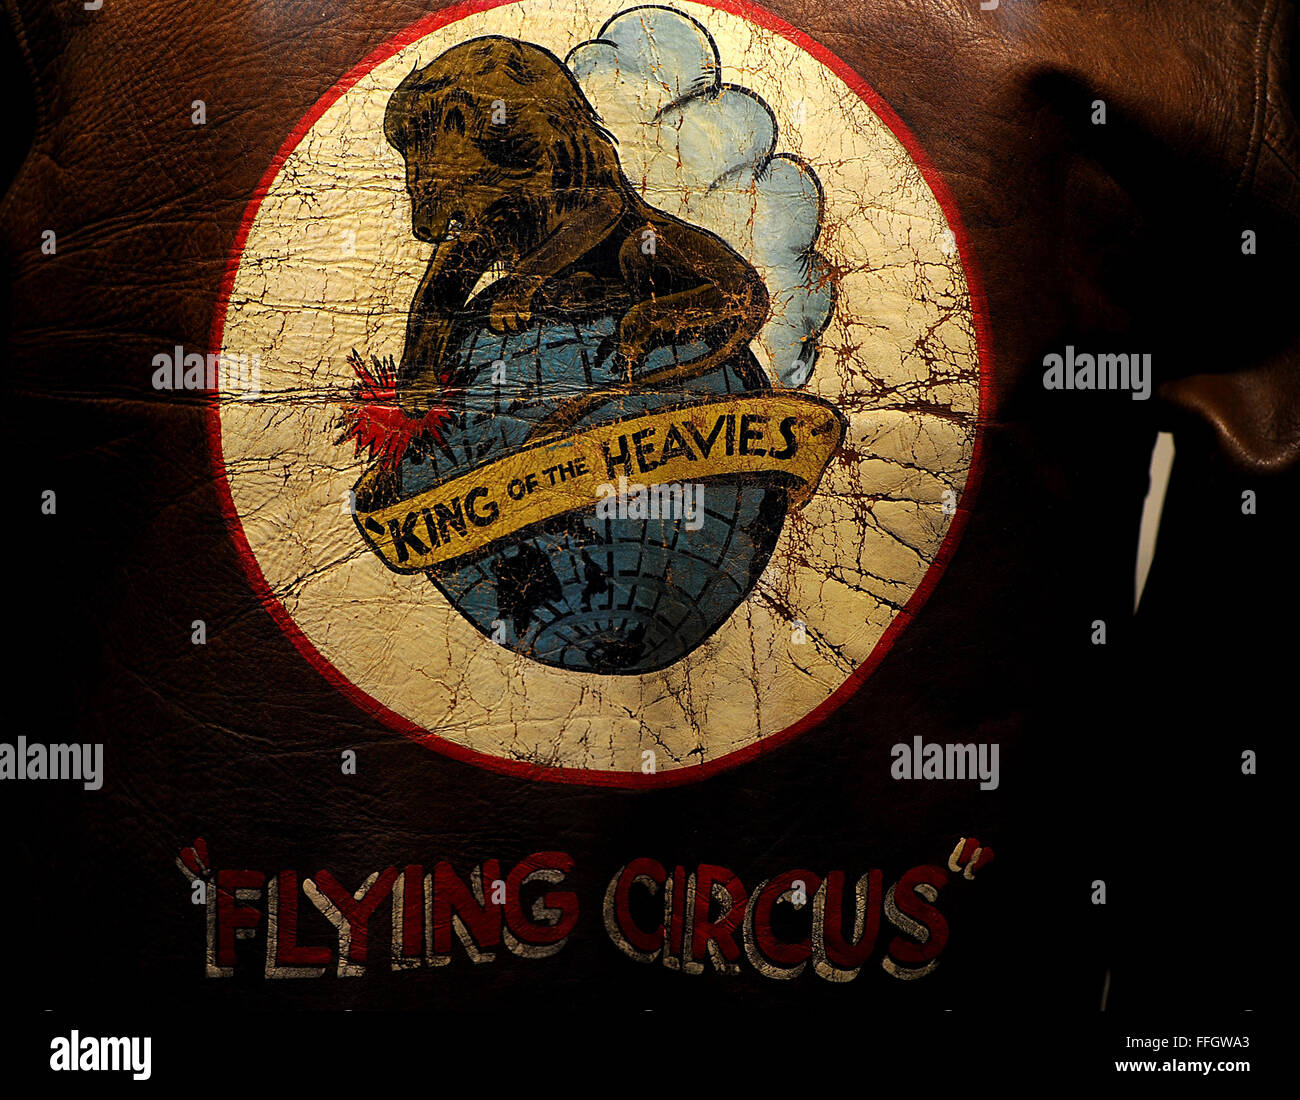 In 1944, the 380th Bomb Group adopted the name 'Flying Circus.' The donor of this bomber jacket, Max Markman, - Stock Image